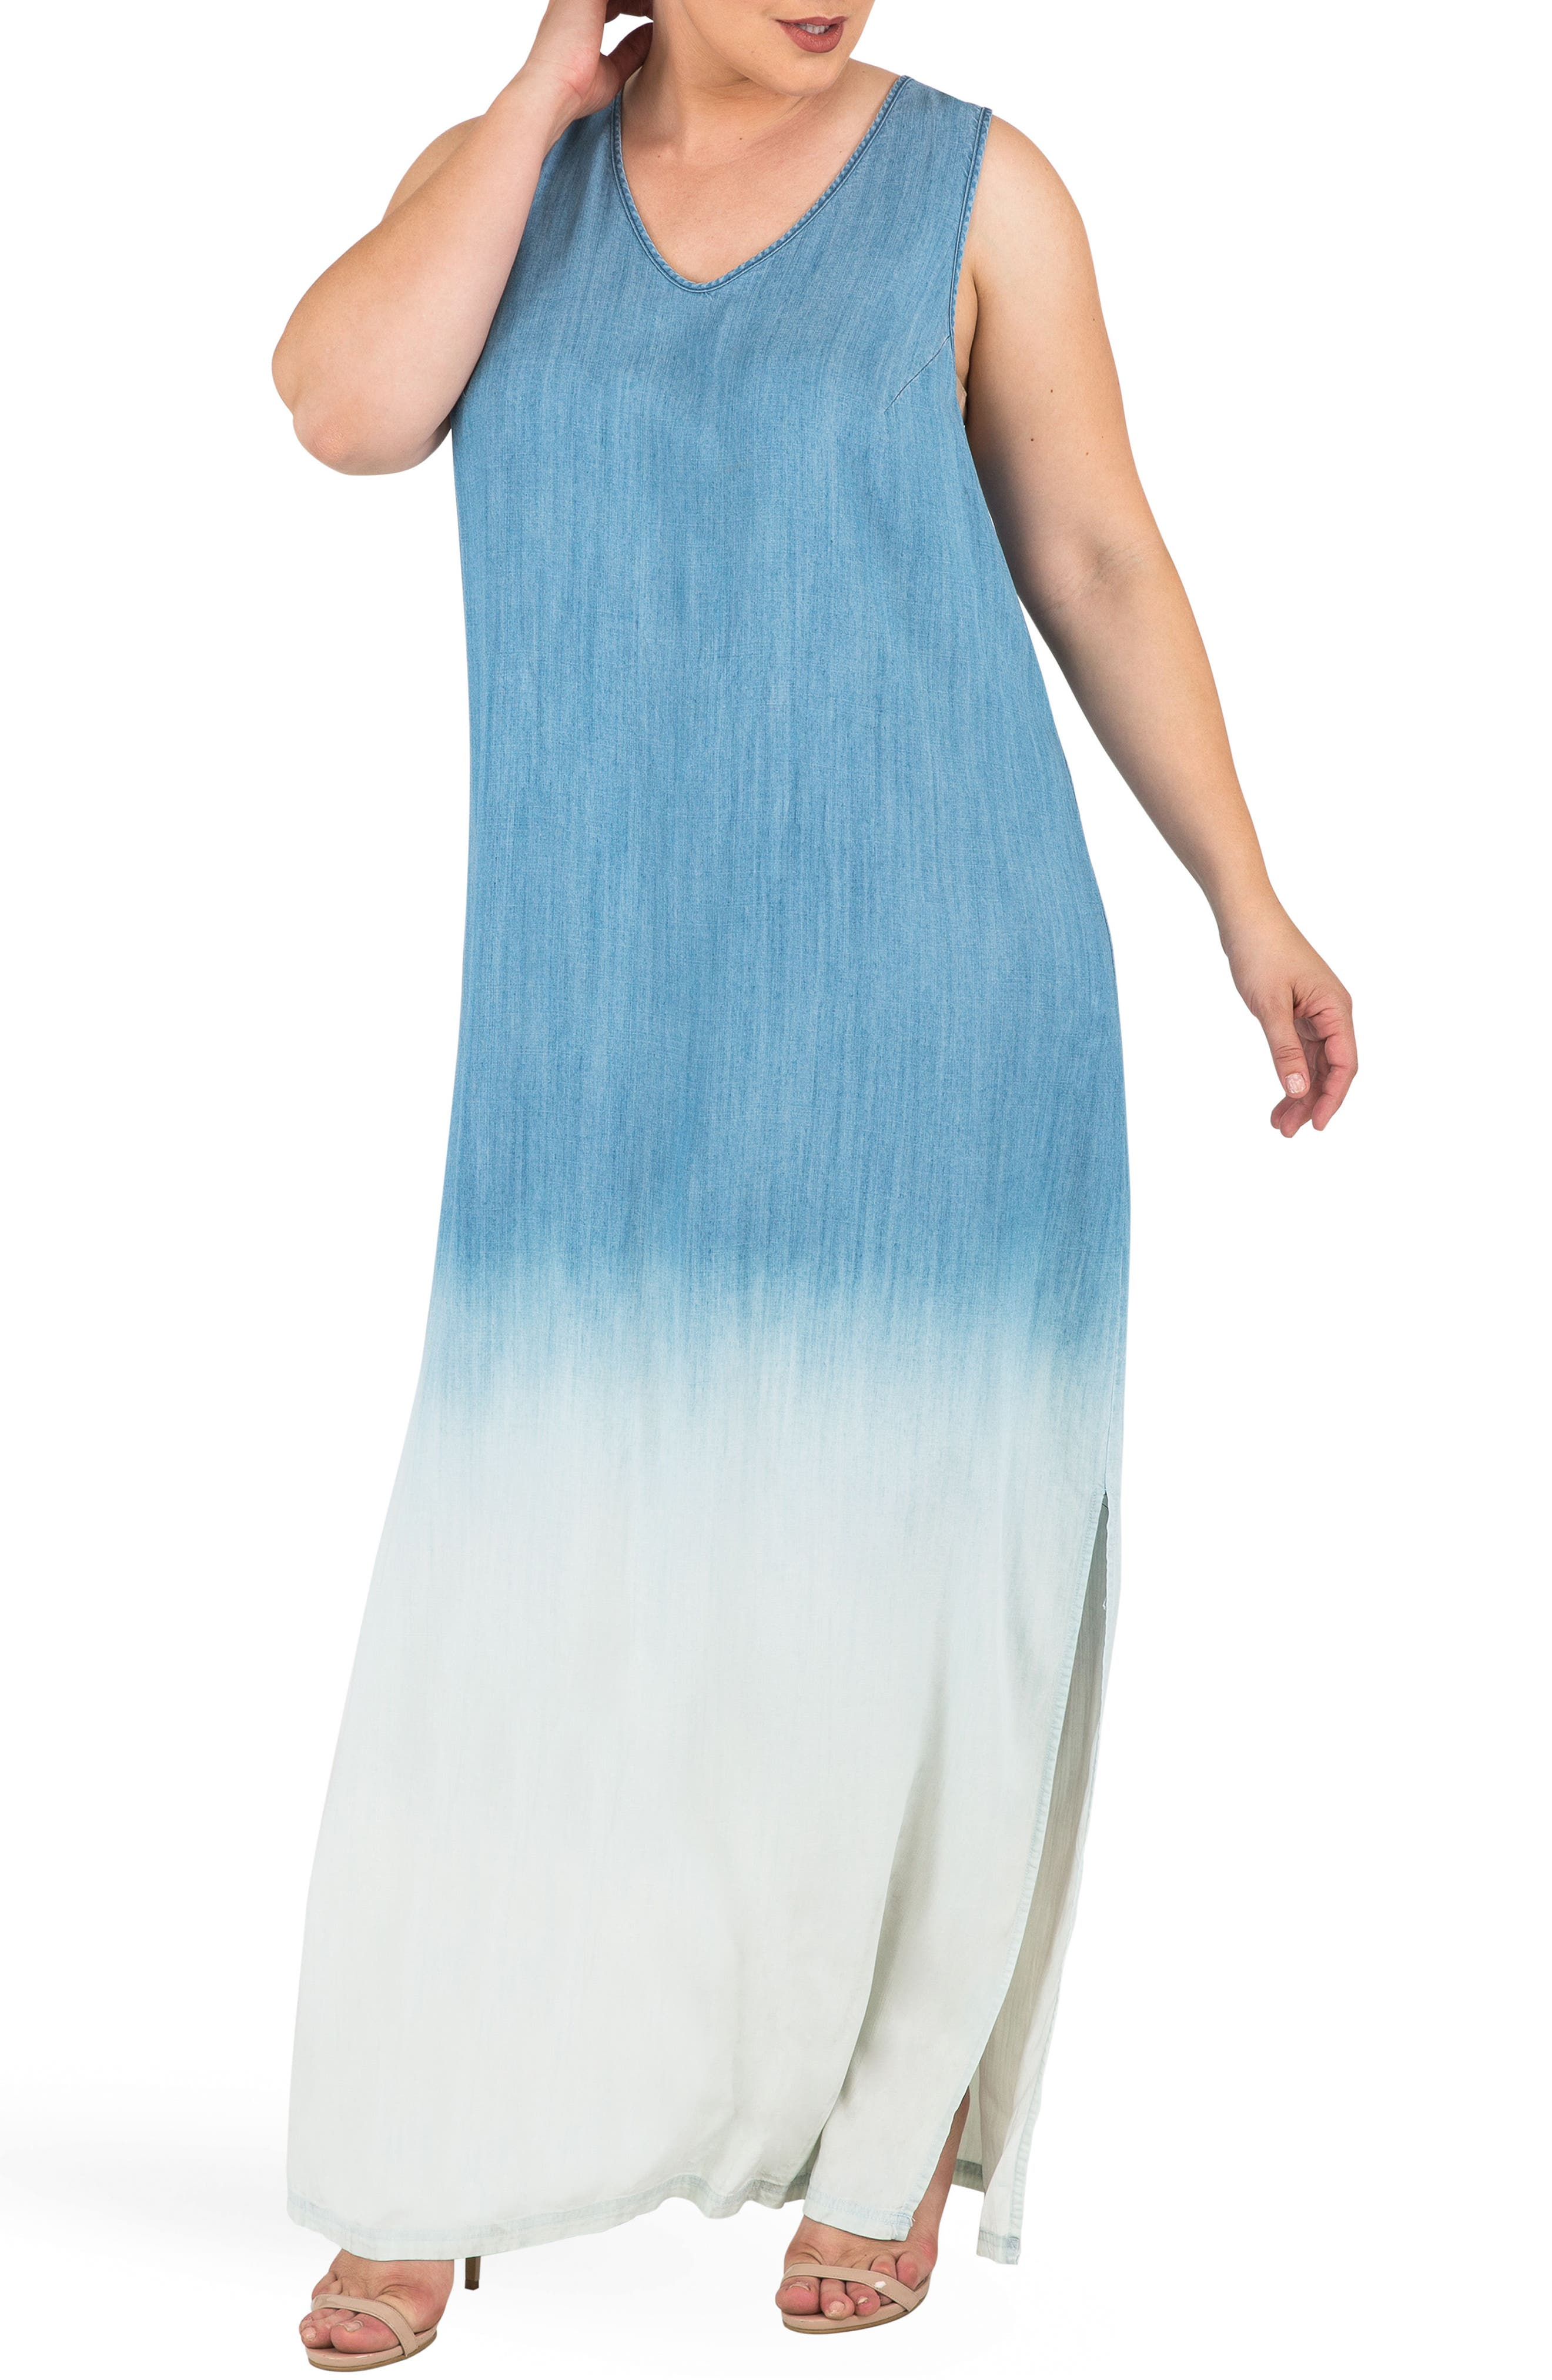 STANDARDS & PRACTICES Angie Ombré Chmbray Maxi Dress